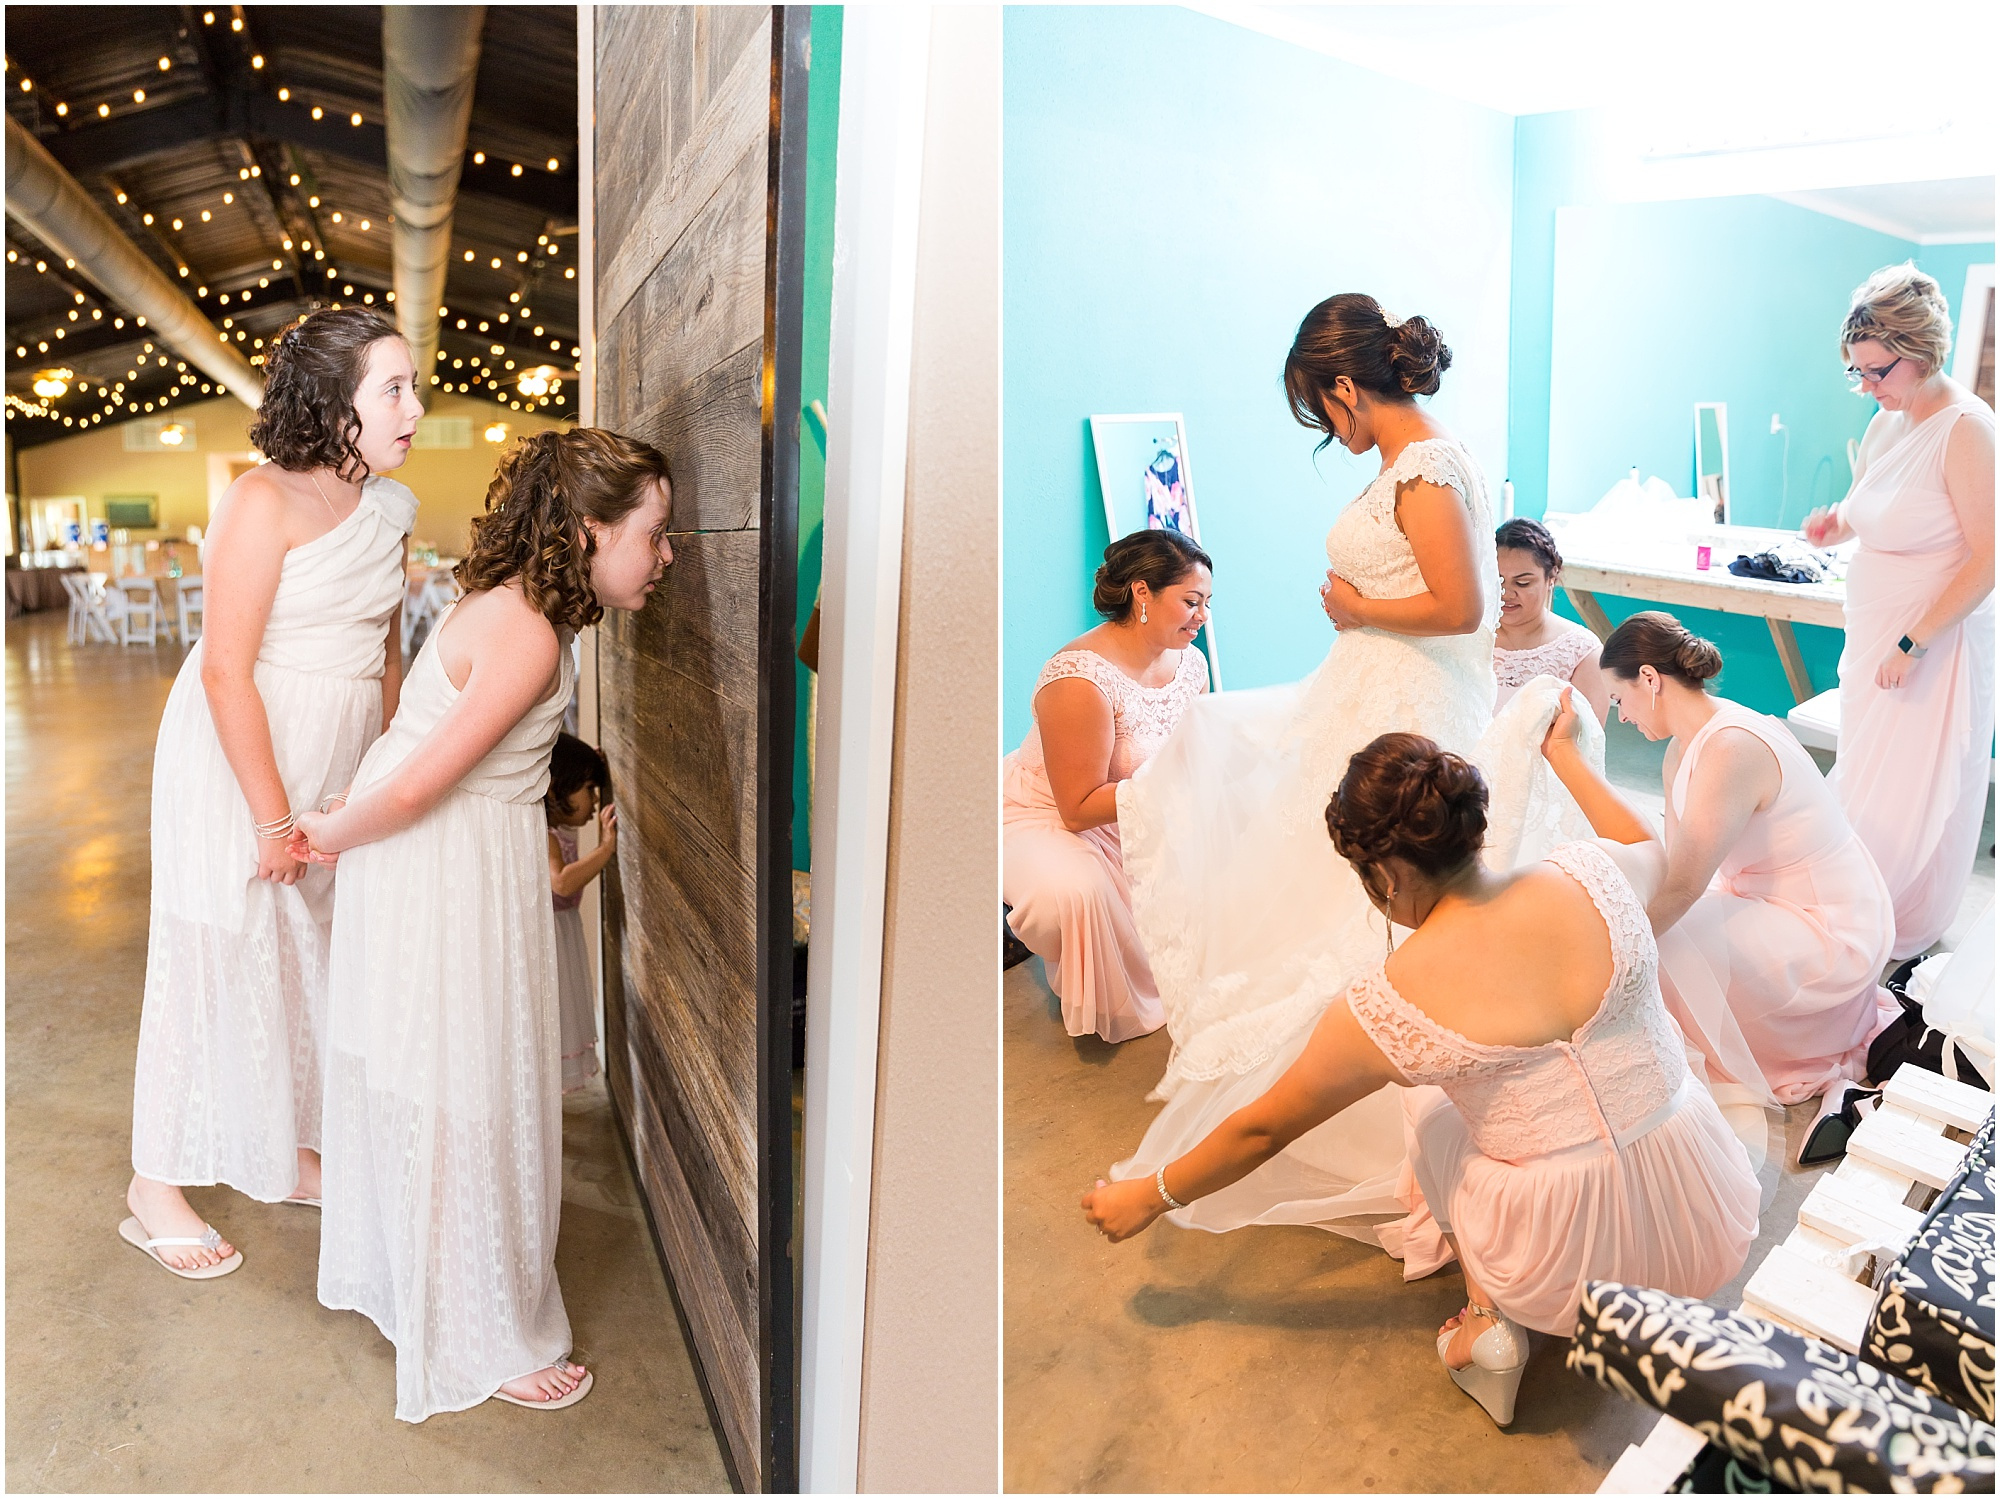 Bride getting in her dress with the help of her bridesmaids, rustic wedding in Belton, Texas - Jason & Melaina Photography - www.jasonandmelaina.com